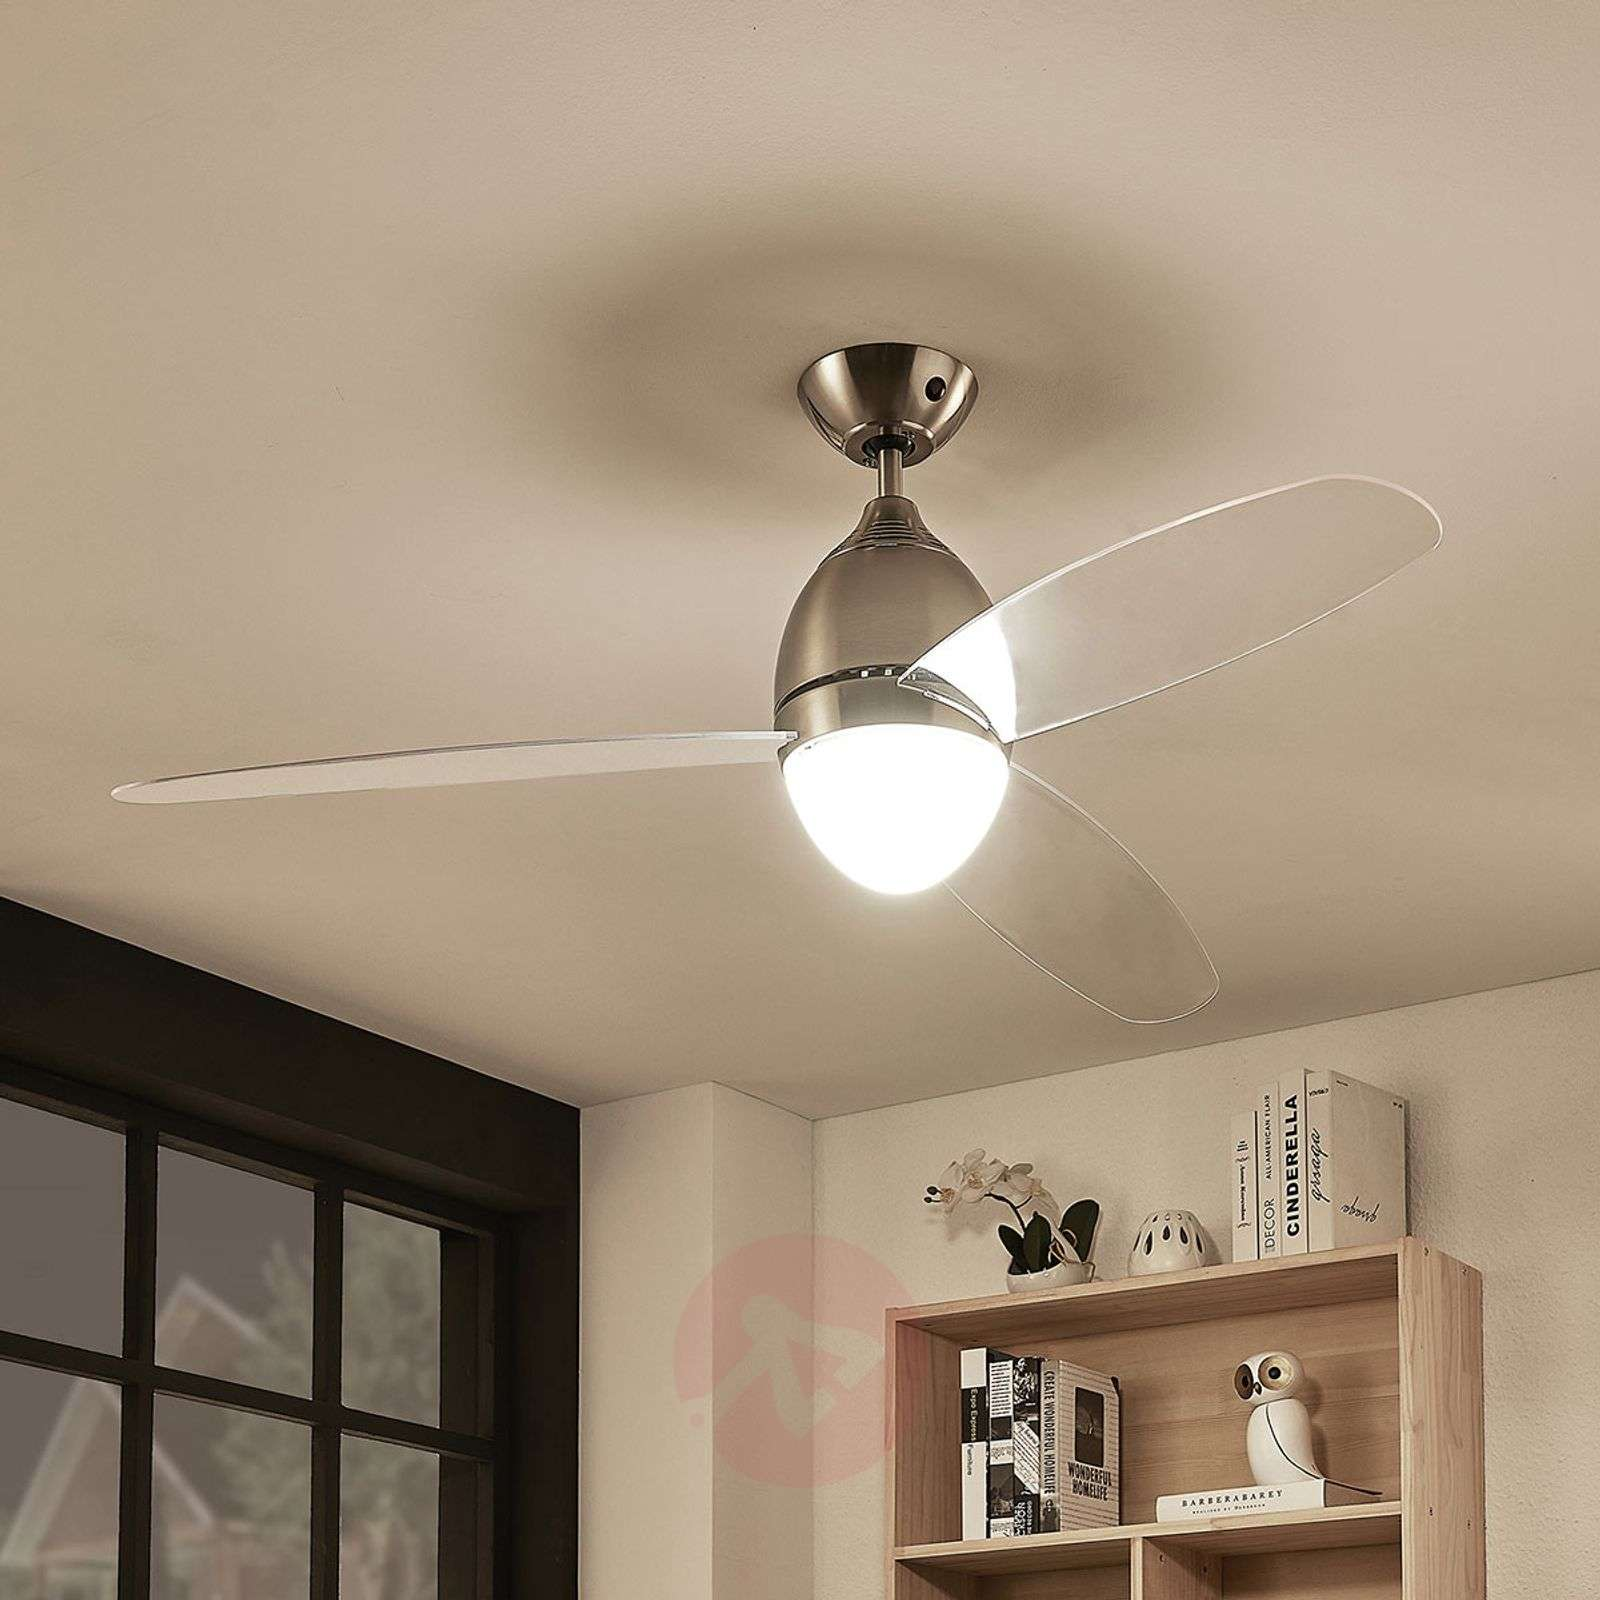 Piara ceiling fan with light, clear-4018210-03